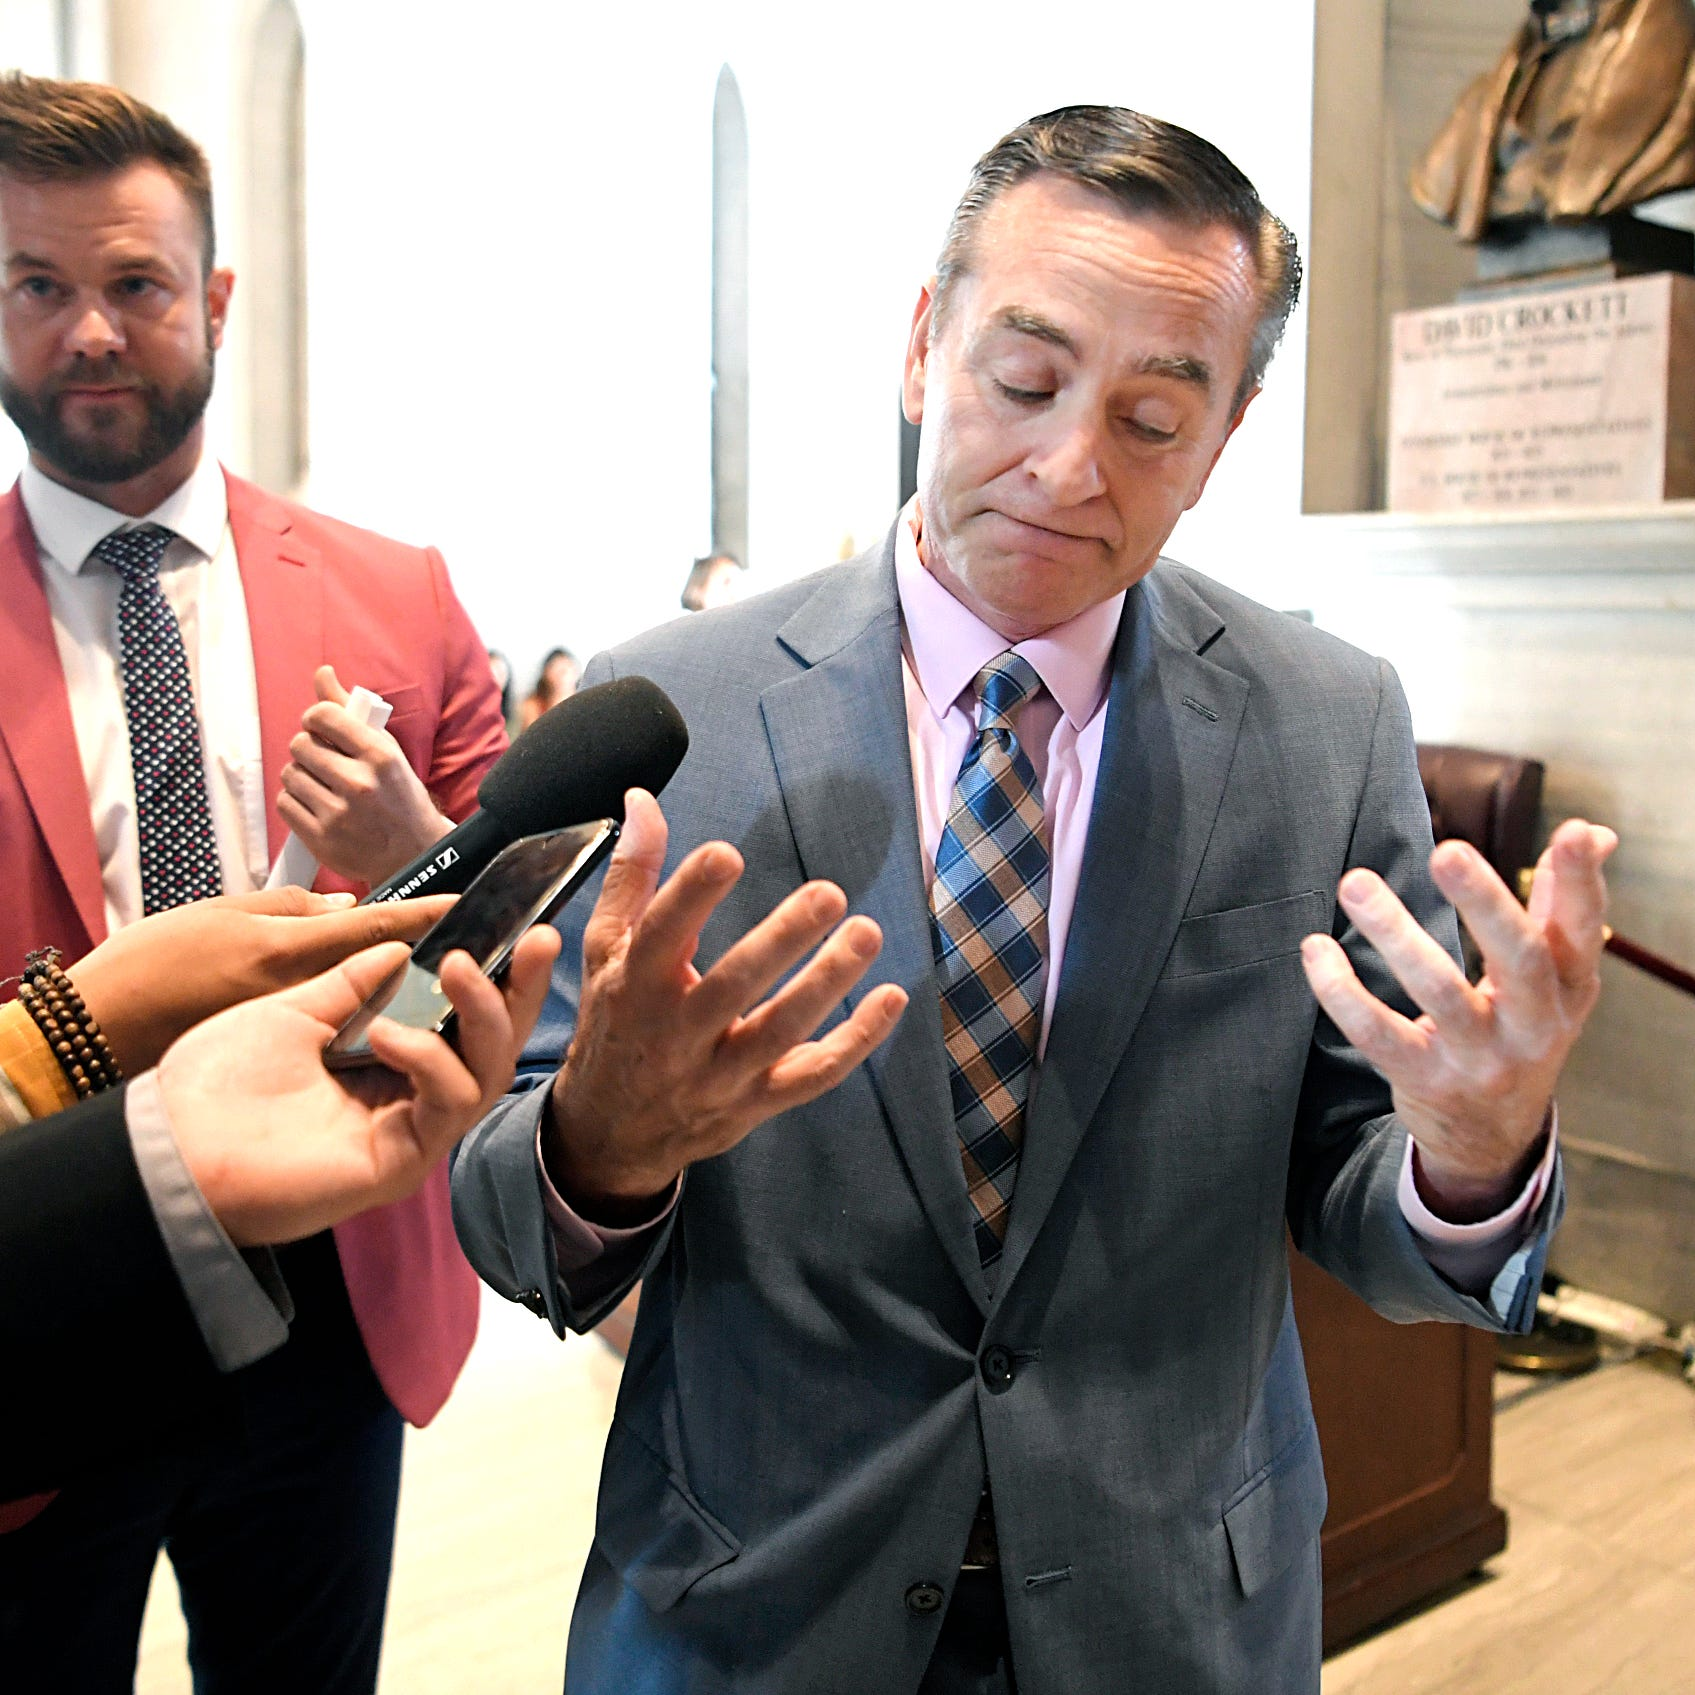 Special prosecutor to review activist's case after questions over email with Speaker Casada's chief aide